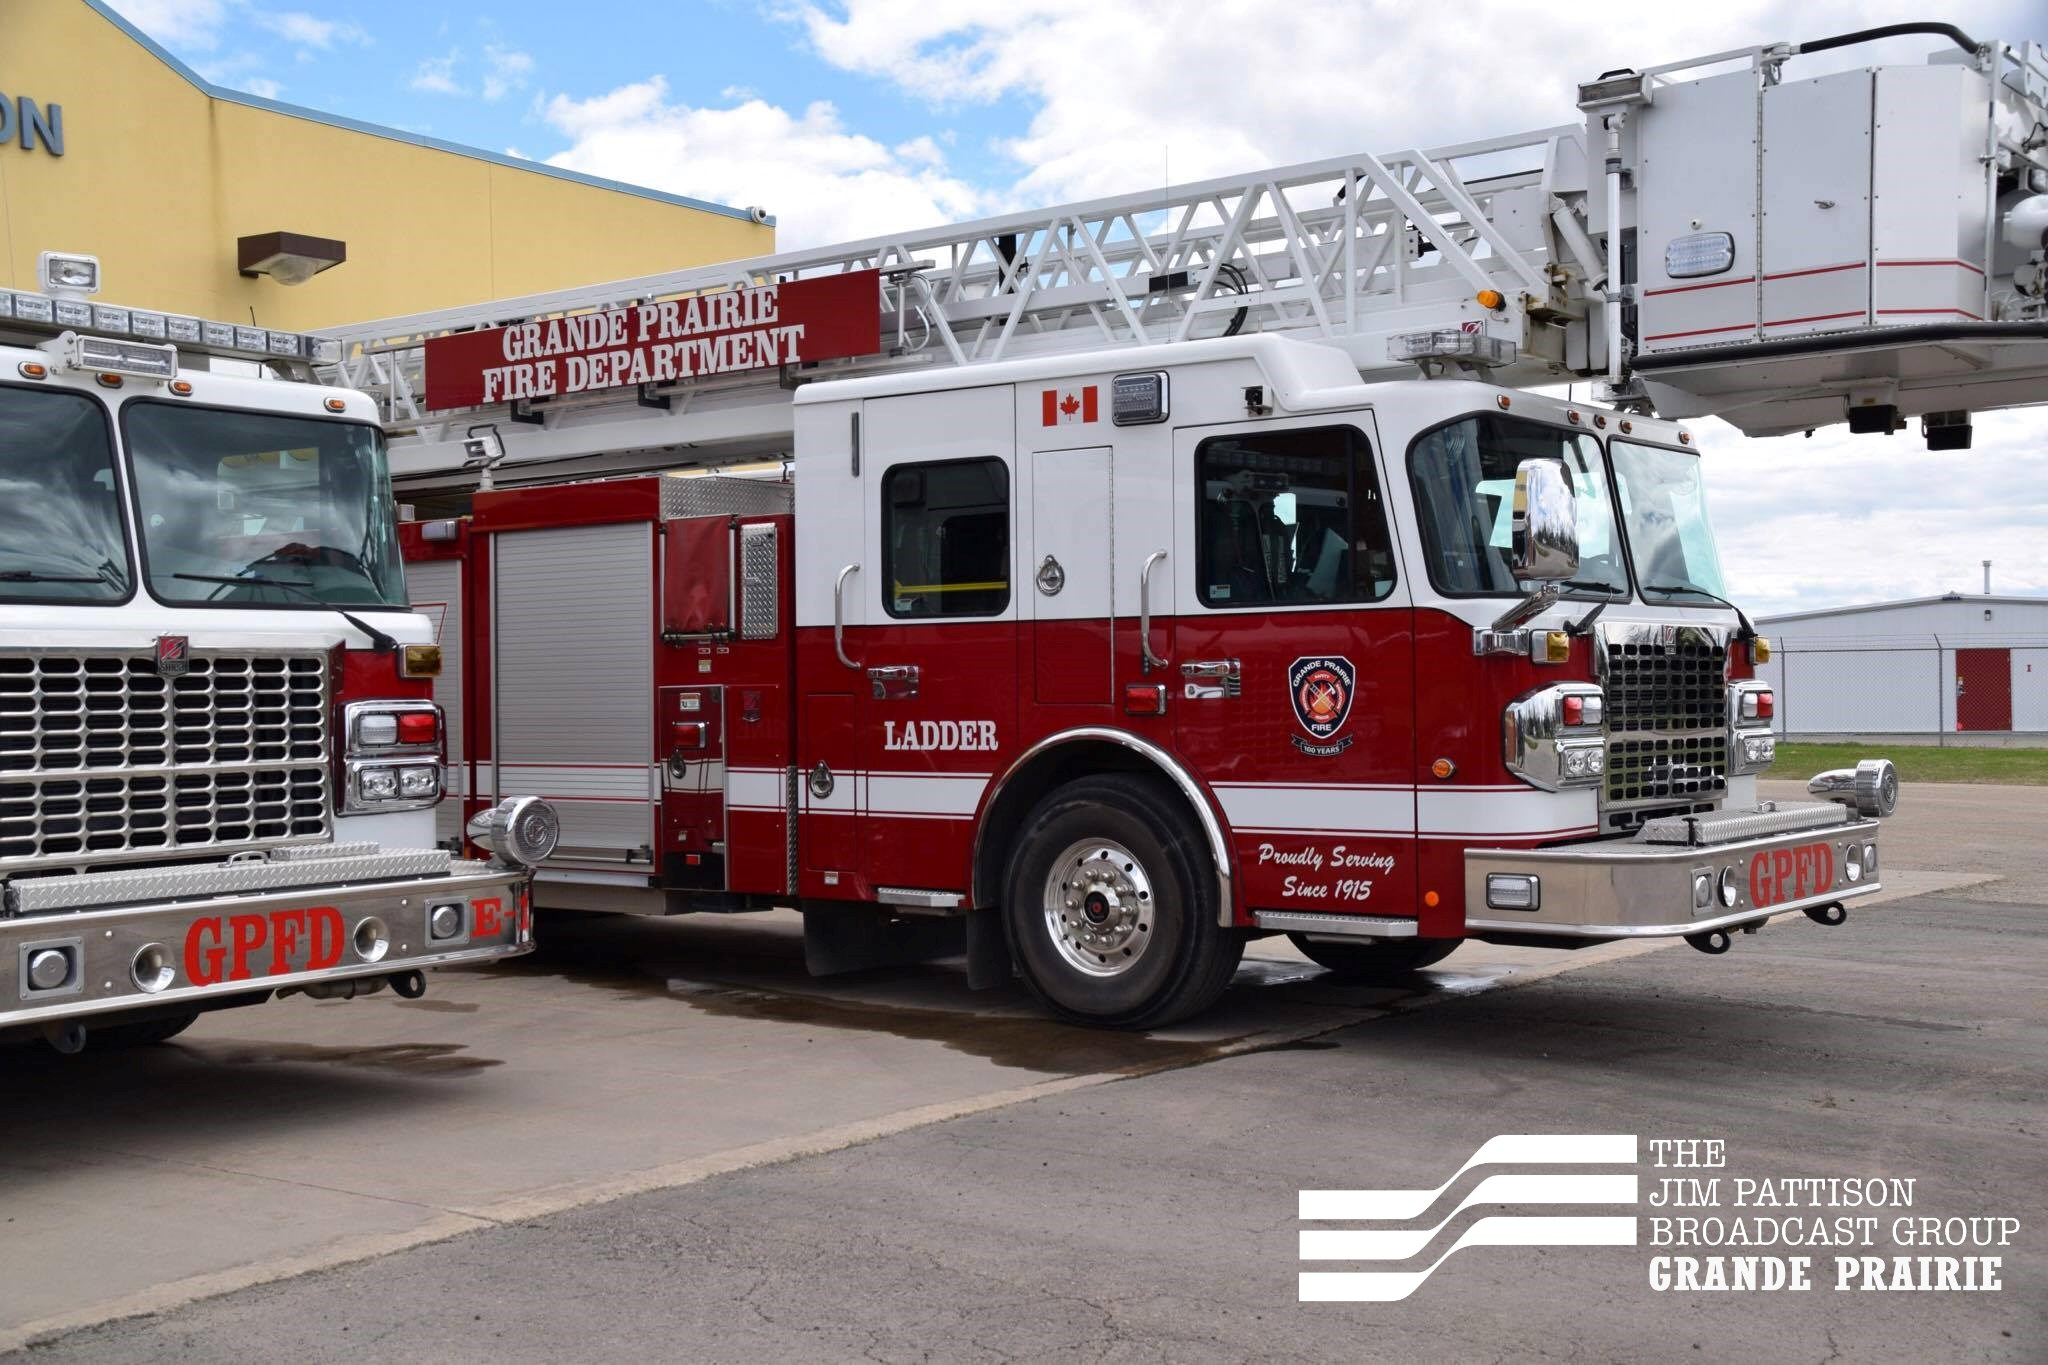 Second structure fire this week caused by improperly disposed cigarette